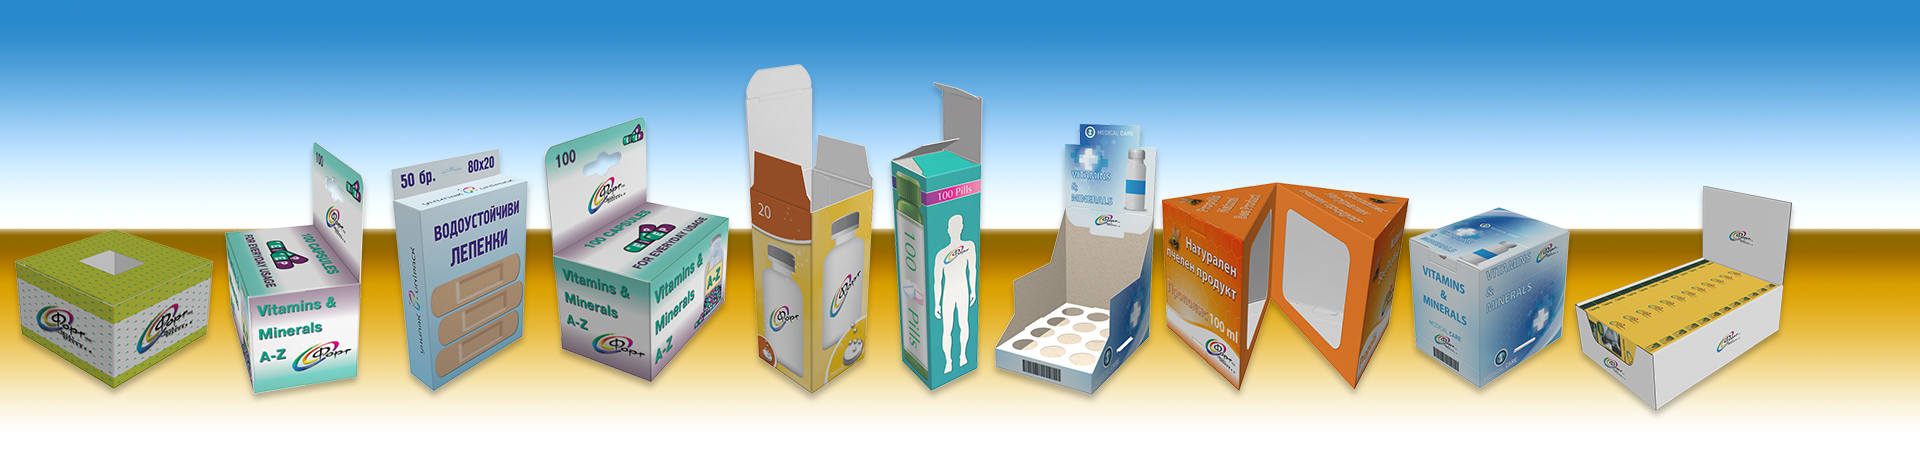 pharmacy-industry-head-image-fort